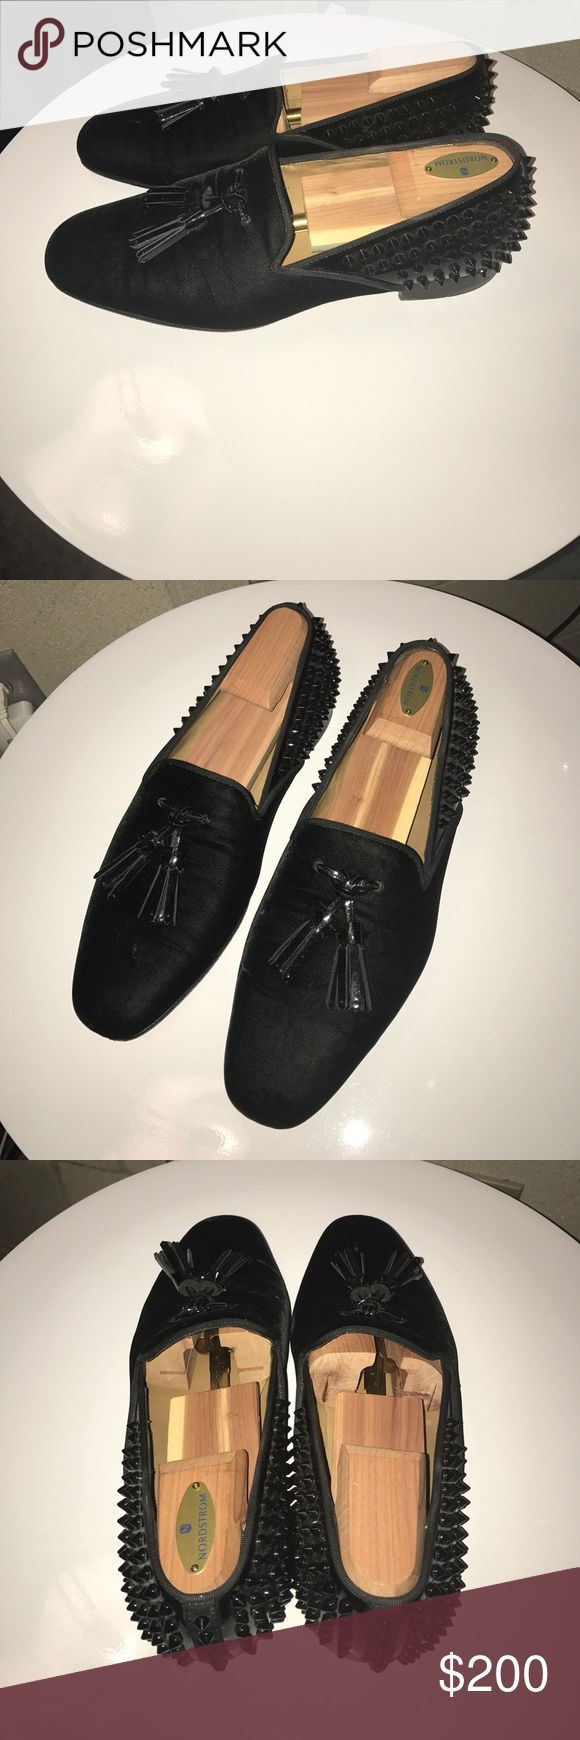 Christian Louboutin black spiked slipped Used Black Louboutin slipper, they have been worn but are still wearable. Not missing any spikes, bottoms have been treated with red rubber, I have the extra spikes and dust bags. Euro size 43 Christian Louboutin Shoes Loafers & Slip-Ons